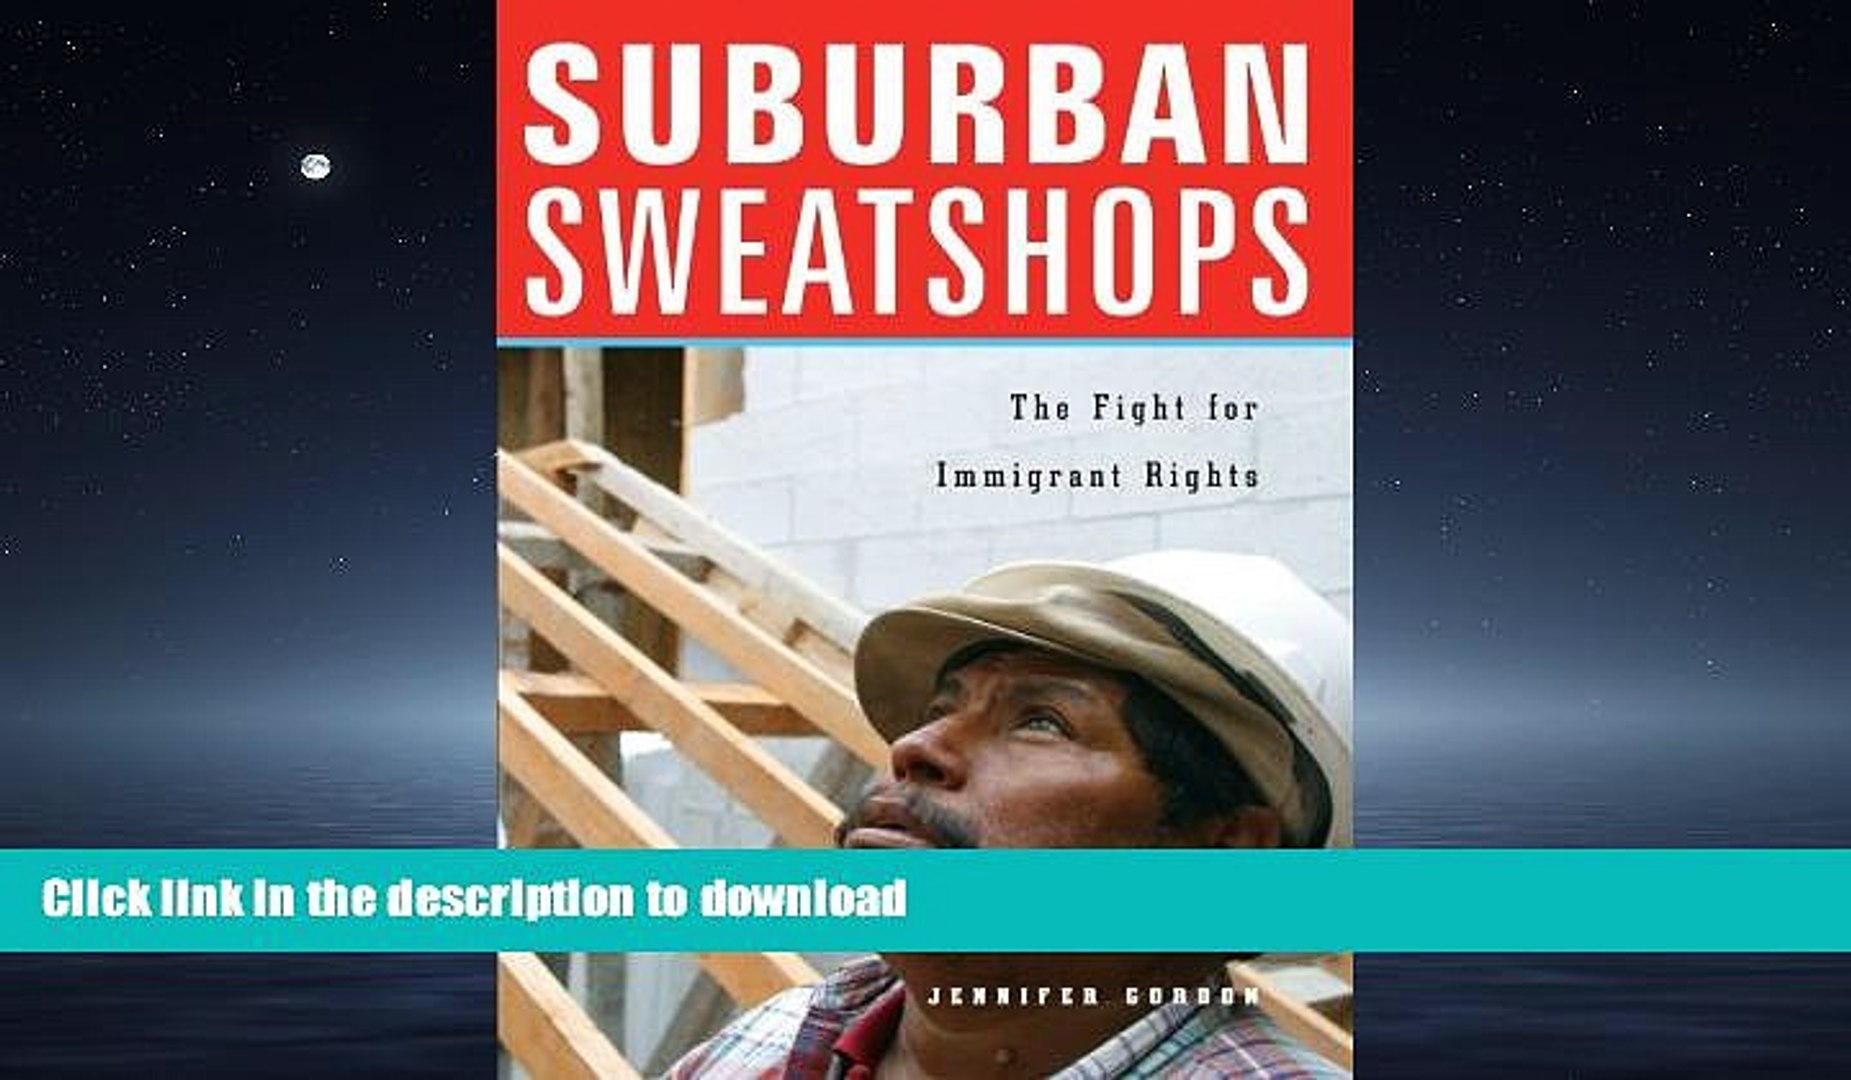 Suburban Sweatshops: The Fight for Immigrant Rights